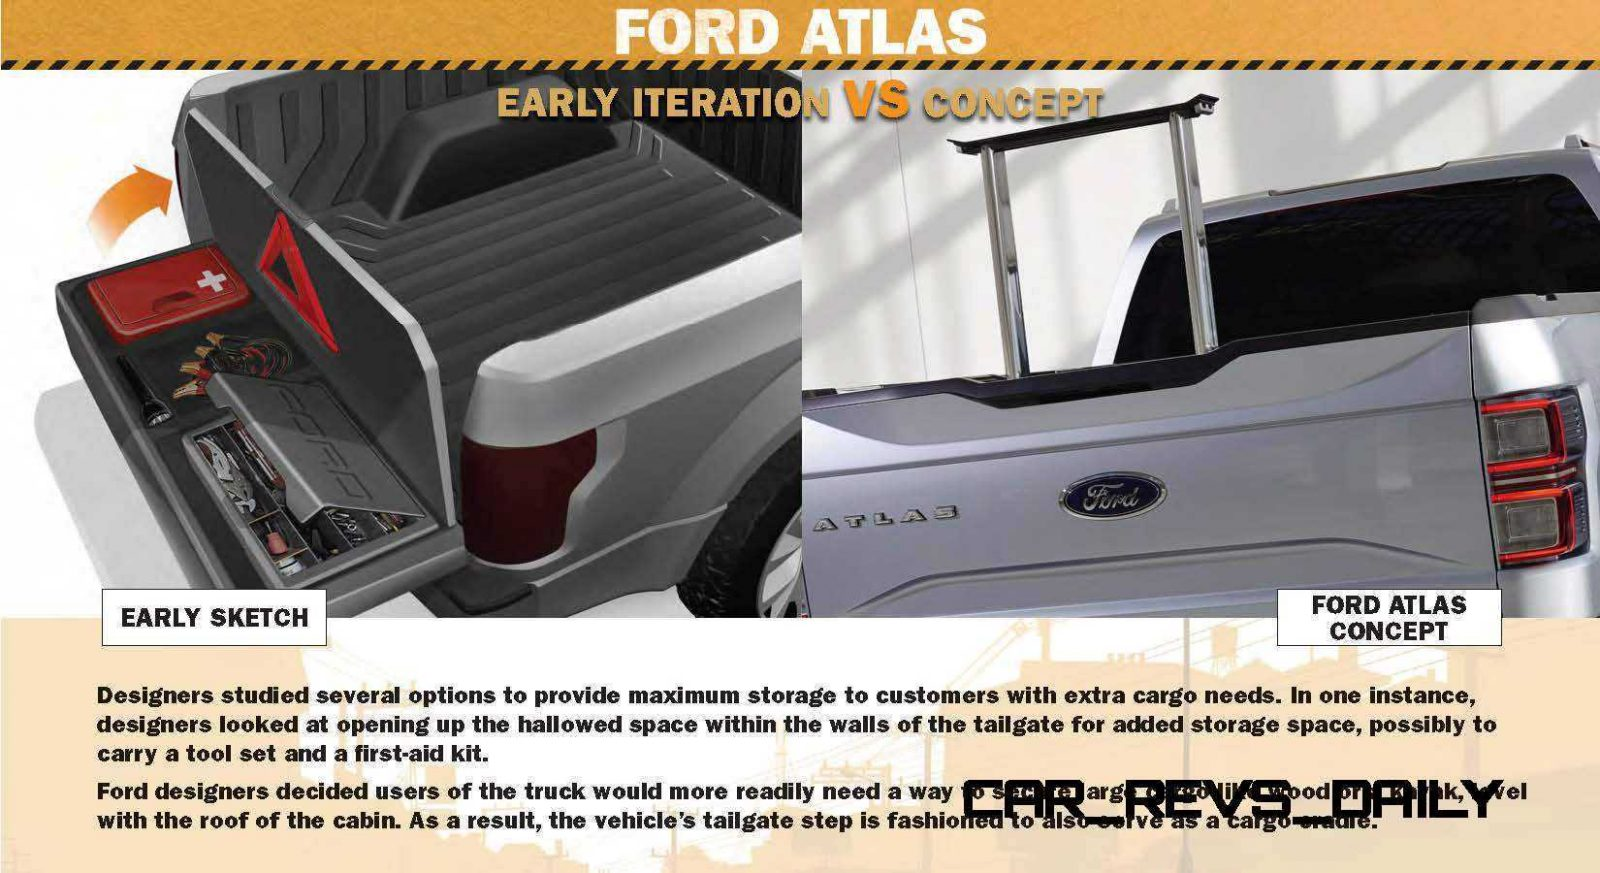 Ford Atlas Concept: Slide 3